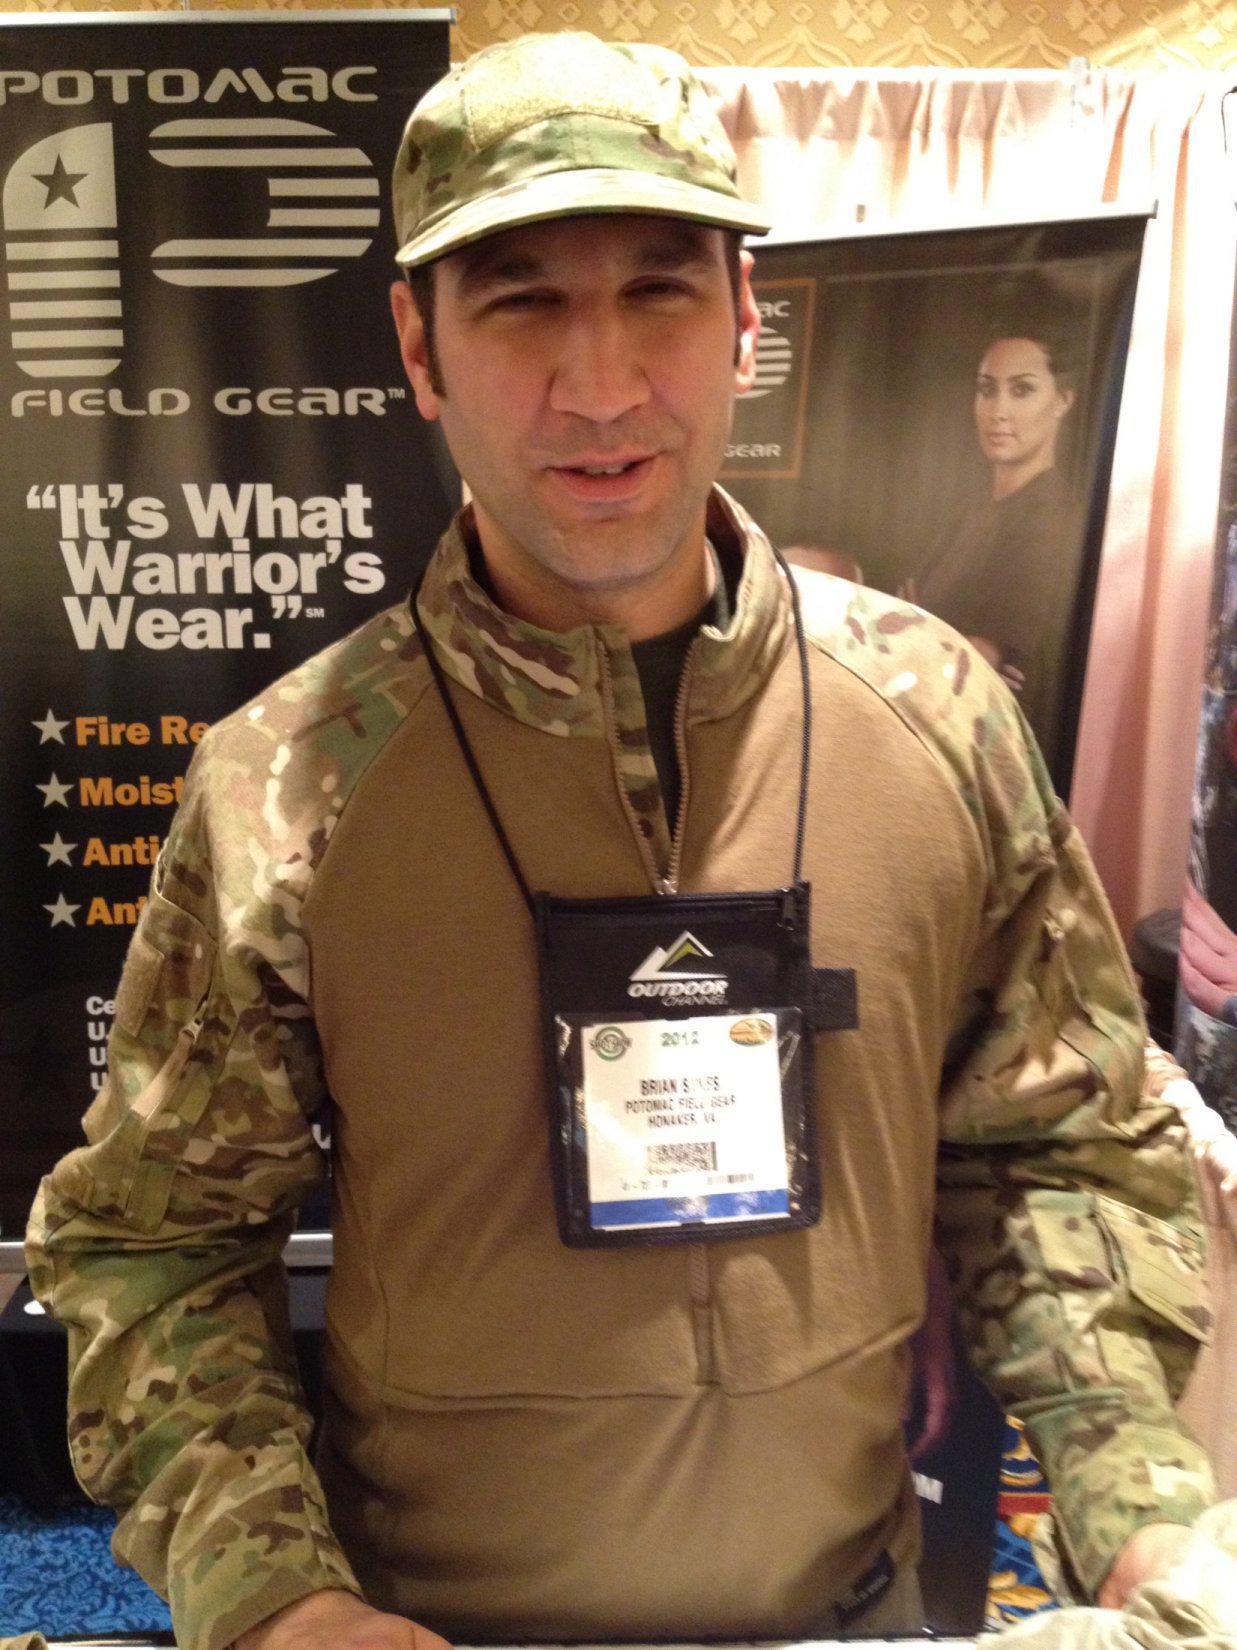 Potomac Field Gear (PFG) Advanced Combat Shirt (ADCS) Gen. II (MultiCam Camouflage): Flame-Retardant/Fire-Resistant (FR), Moisture-Wicking Battle Shirt/BDU with Passive-Cooling Protective Padding and X-Static Silver Fiber-Laced Advanced Protective Fabric (APF) at SHOT Show 2012 (Video!)